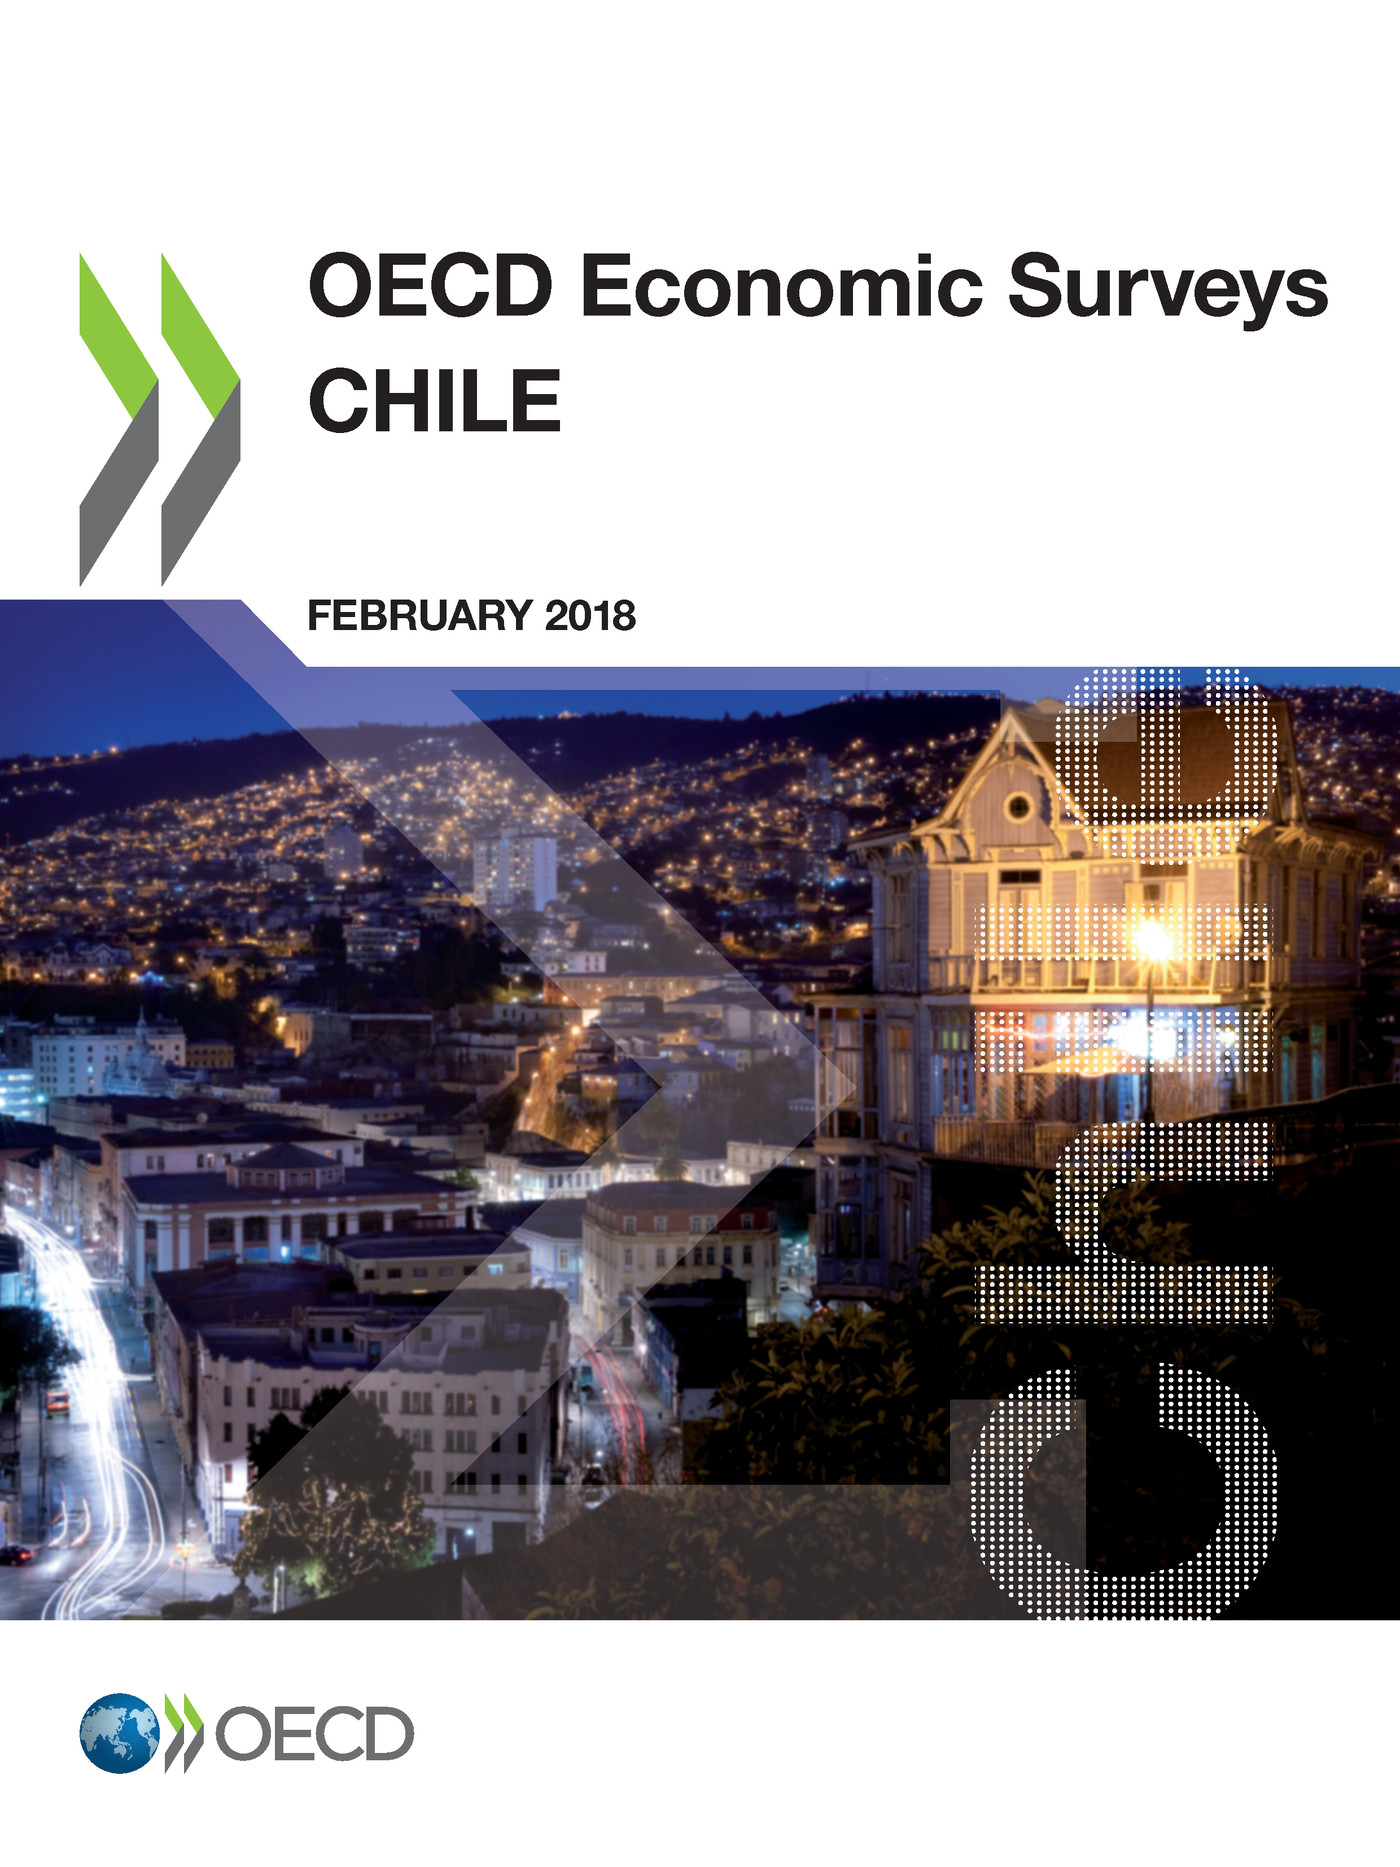 OECD Economic Surveys: Chile 2018 De  Collectif - OCDE / OECD